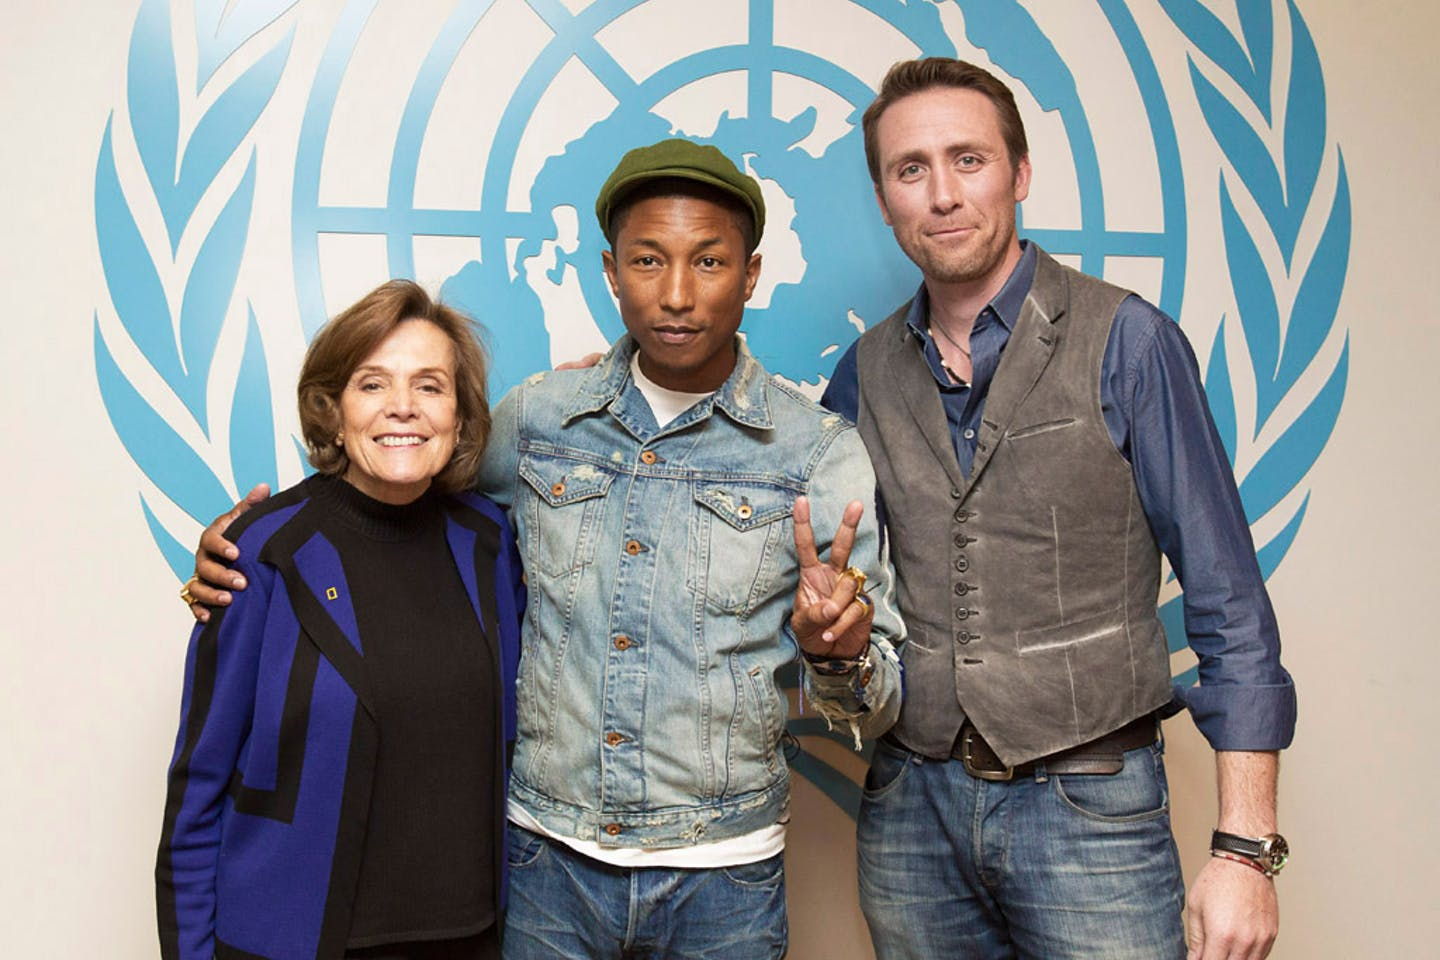 pharell williams happy UN